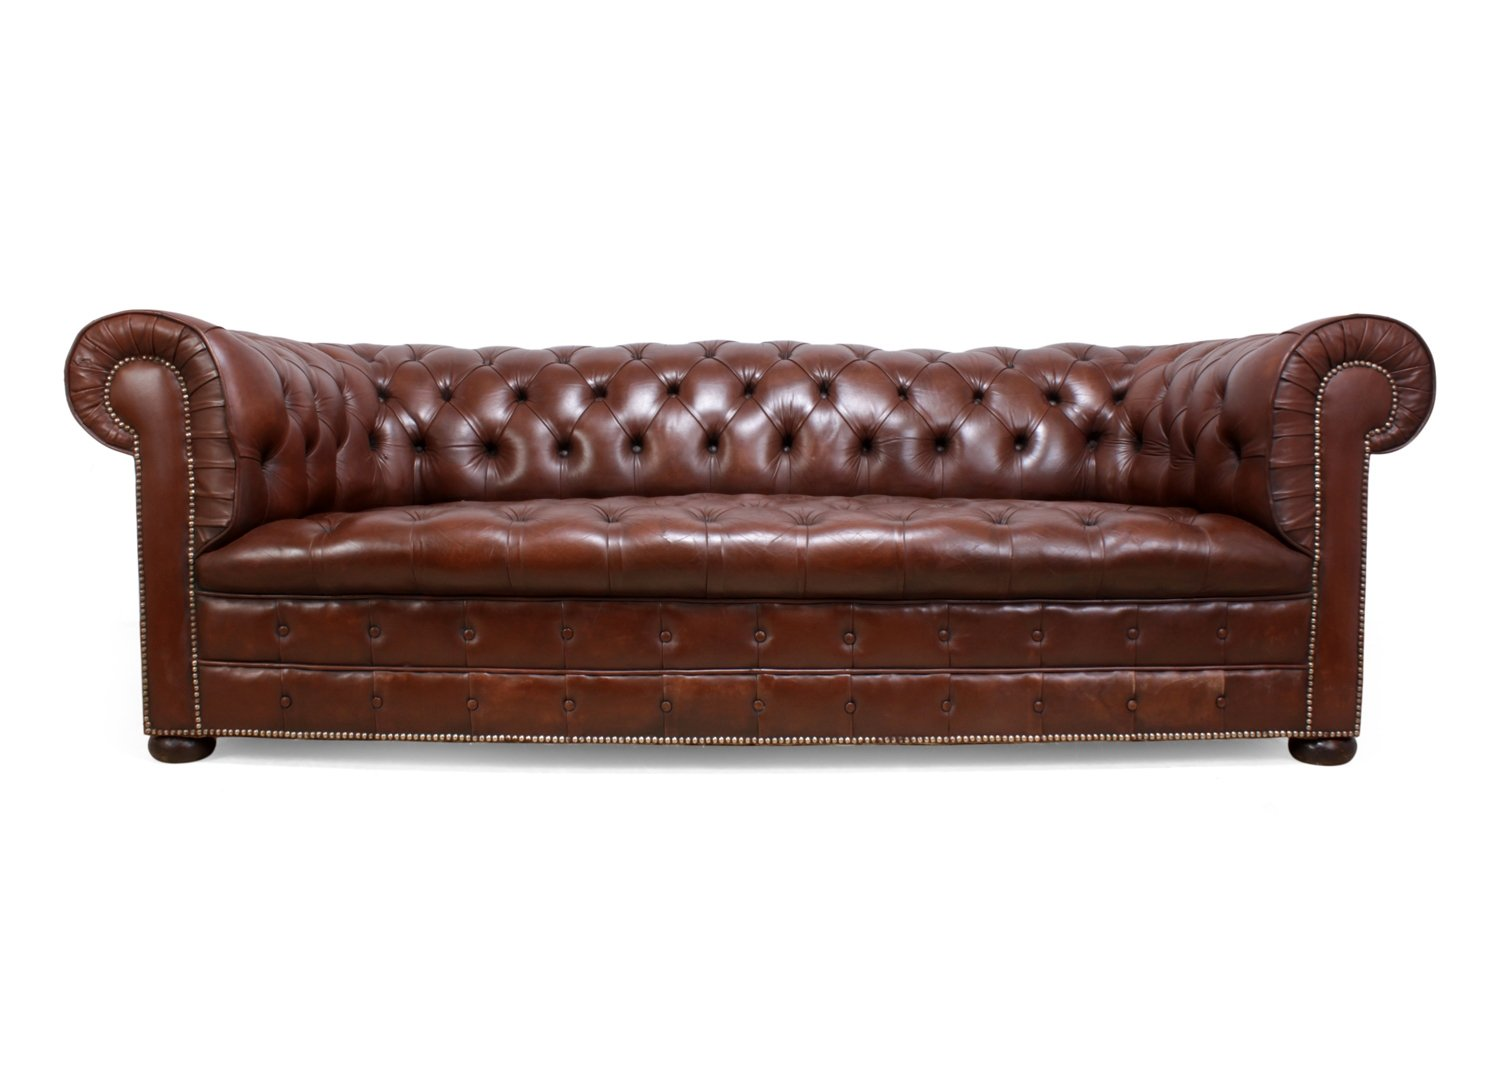 Vintage Brown Leather Chesterfield sofa, 1960s | #74829